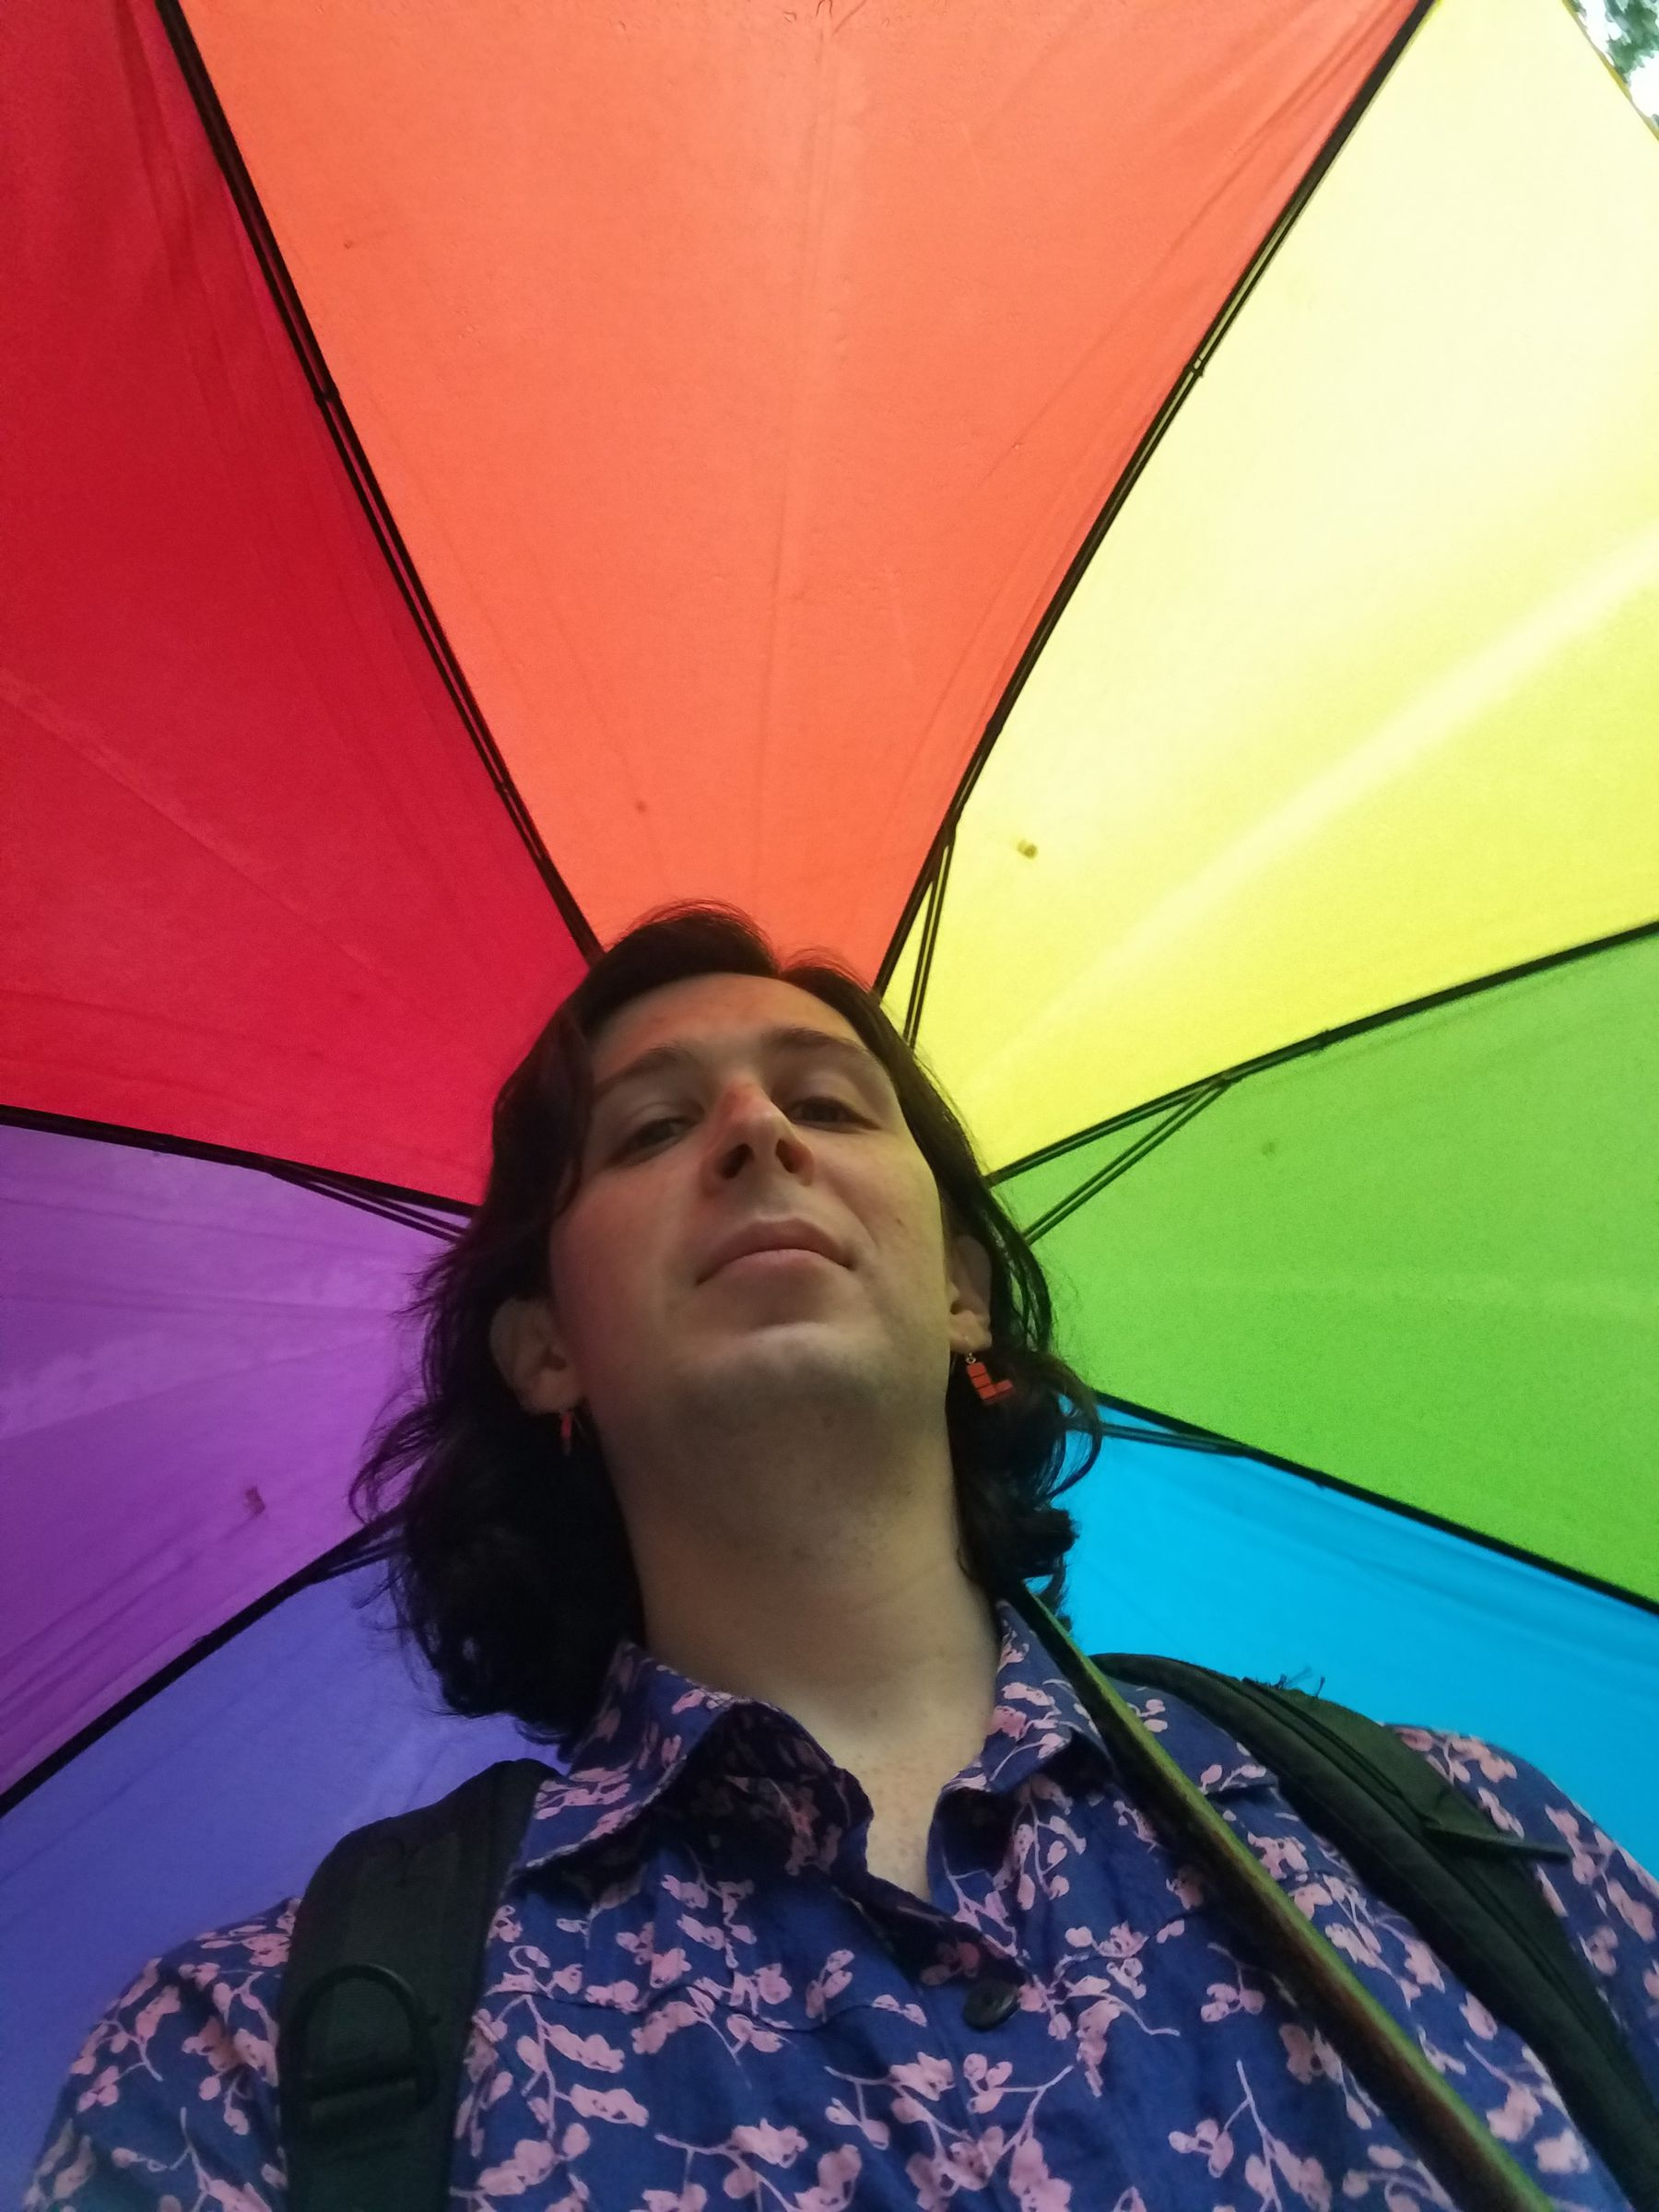 A person under an rainbow colored umbrella. The photo is taken from below and looking up, so their umbrella is the background framing their face.